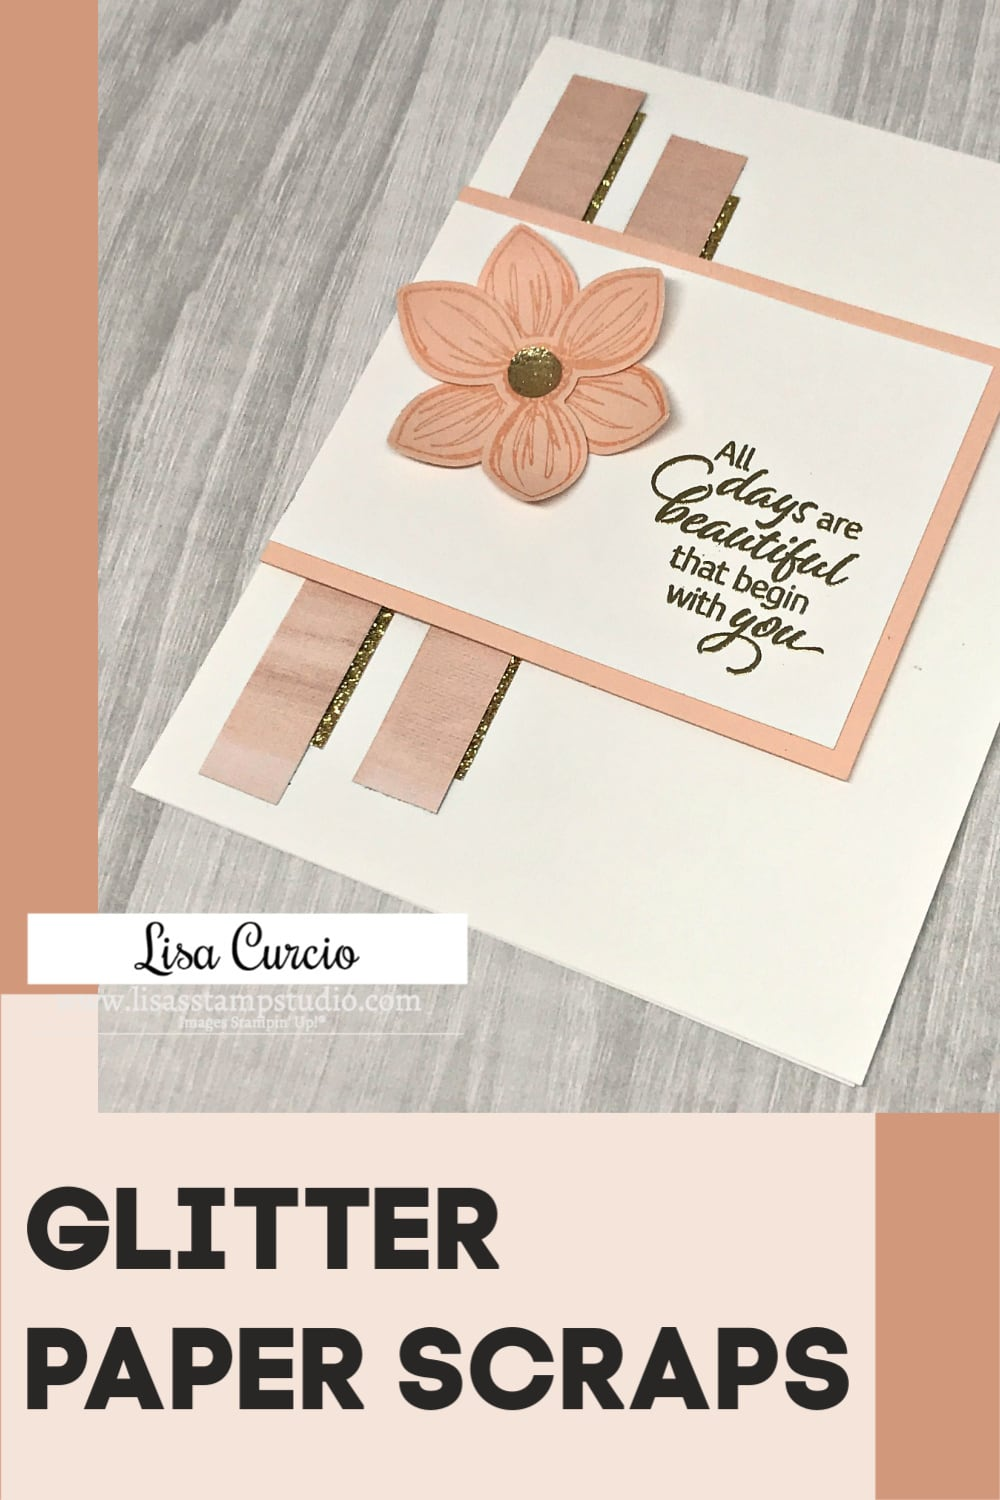 Glitter-Paper-Scraps-on-Handmade-Card-by-Lisa-Curcio